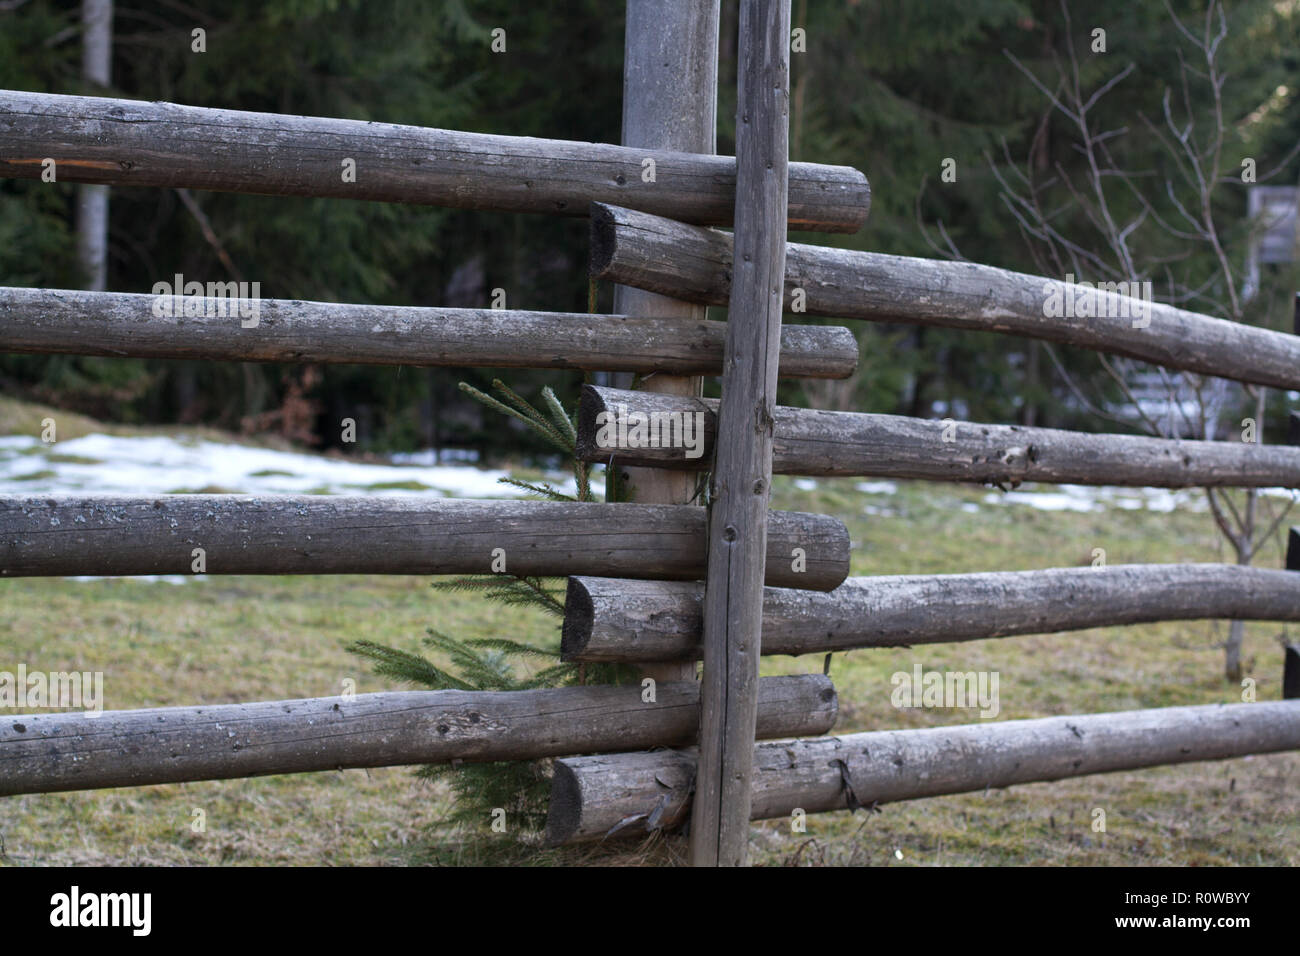 Wooden fence detail in mountains forest village on spring day - Stock Image